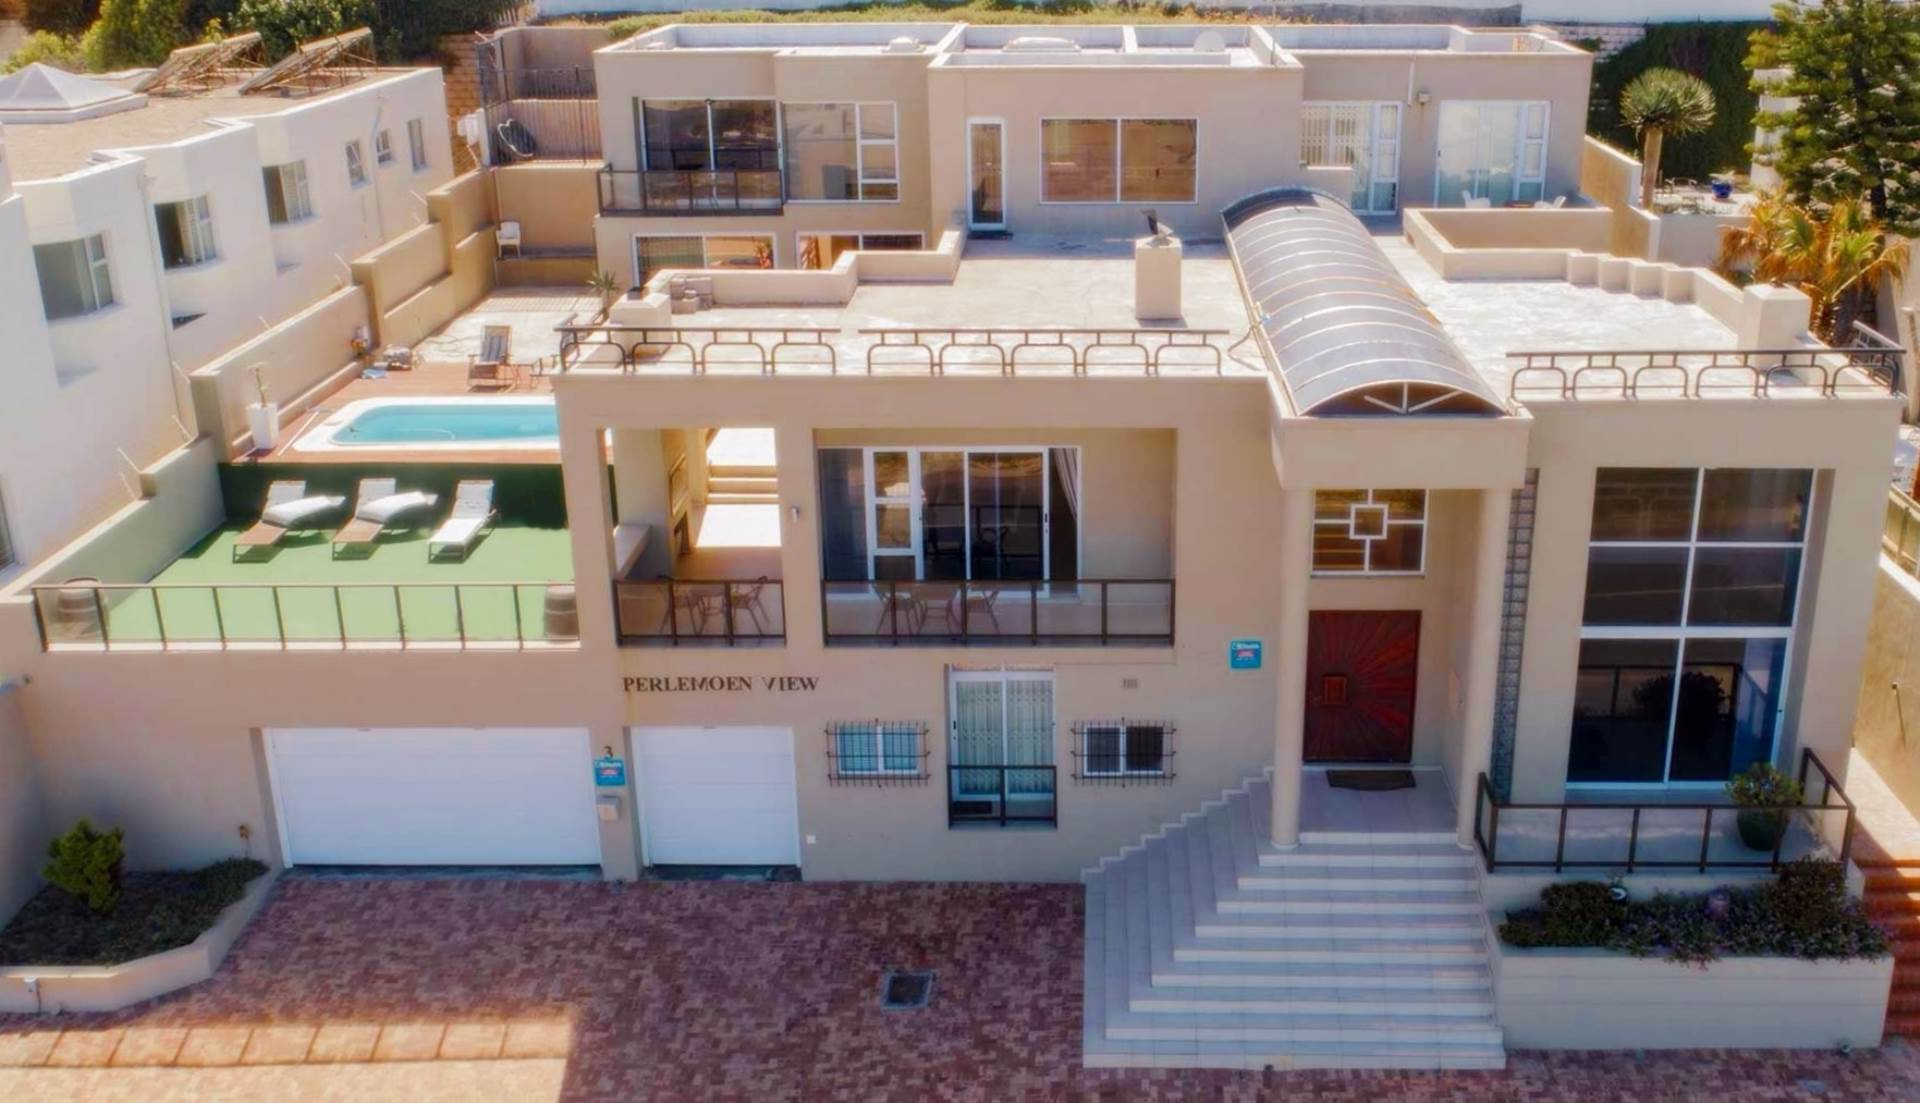 9 BedroomHouse For Sale In Bloubergstrand